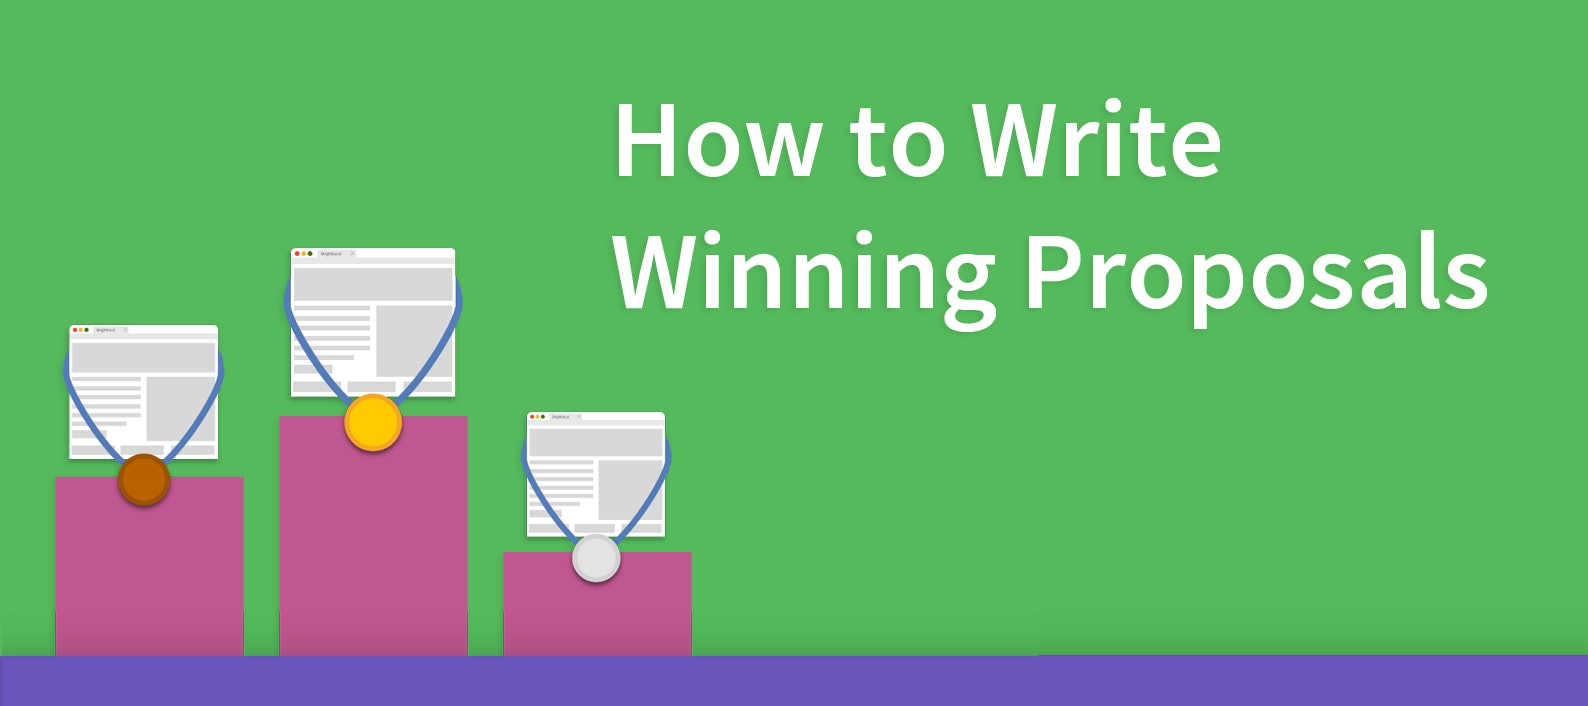 Writing a Proposal Can Be Difficult | Learn Tips to Write